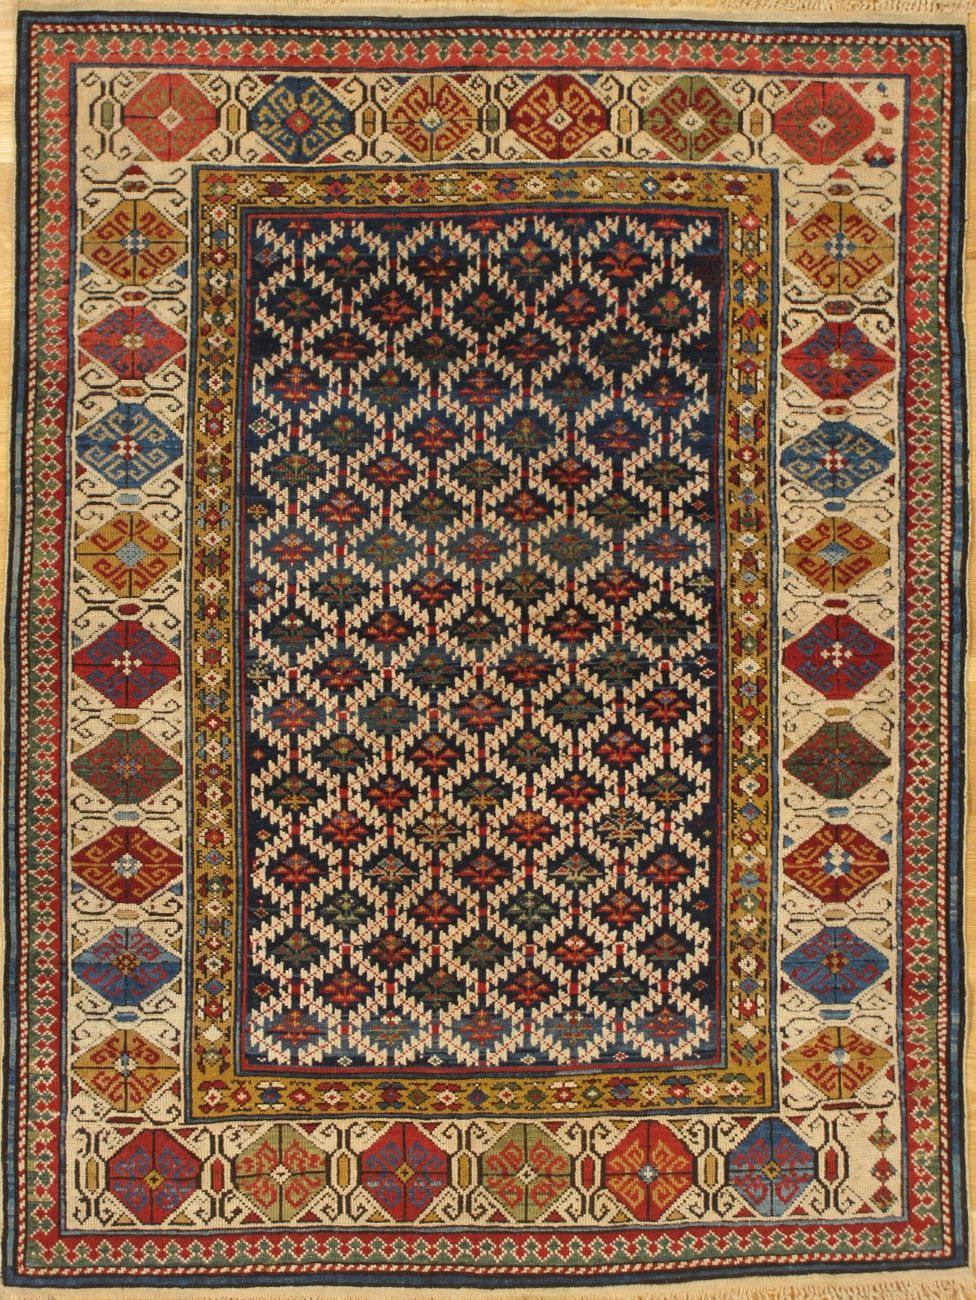 Zejwa Rug From Eastern Caucasus Kuba District West Coast Of The Caspian Sea Age Circa 1880 Size 6 0 X4 1 183x124 Cm Rugs Rugs On Carpet Tribal Carpets